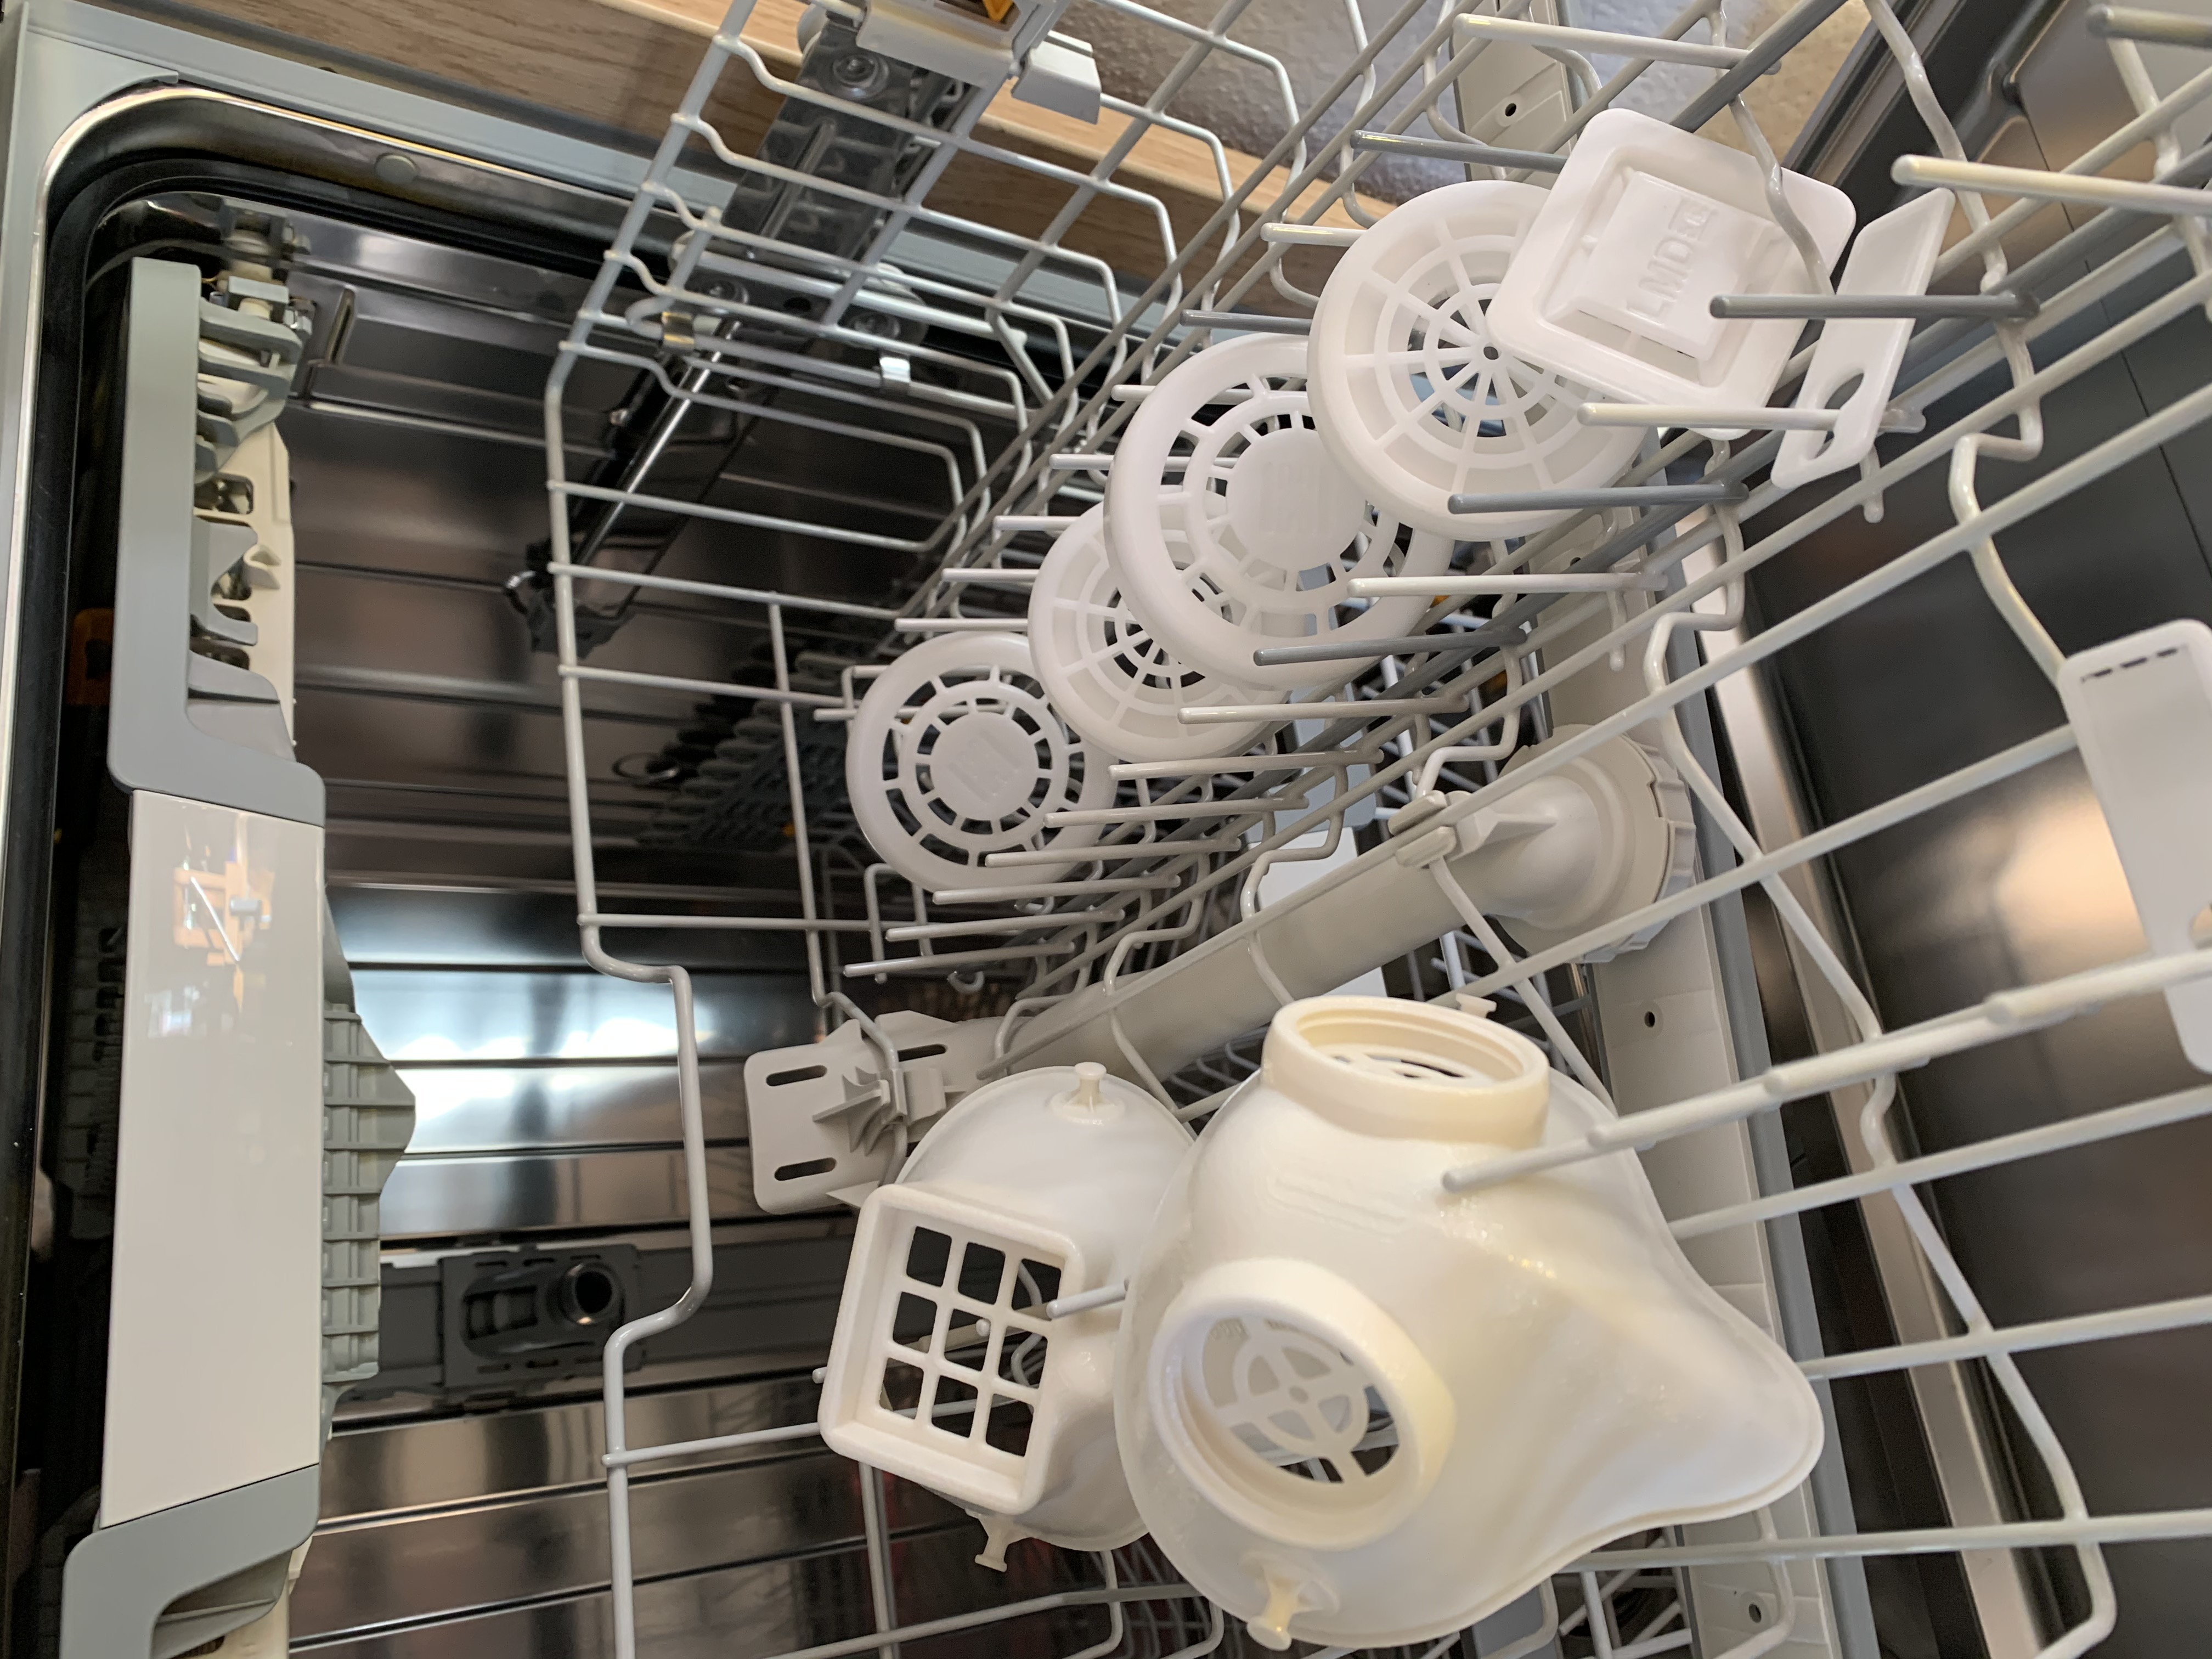 The entire mask can be cleaned in the dishwasher (Source: Lehvoss)